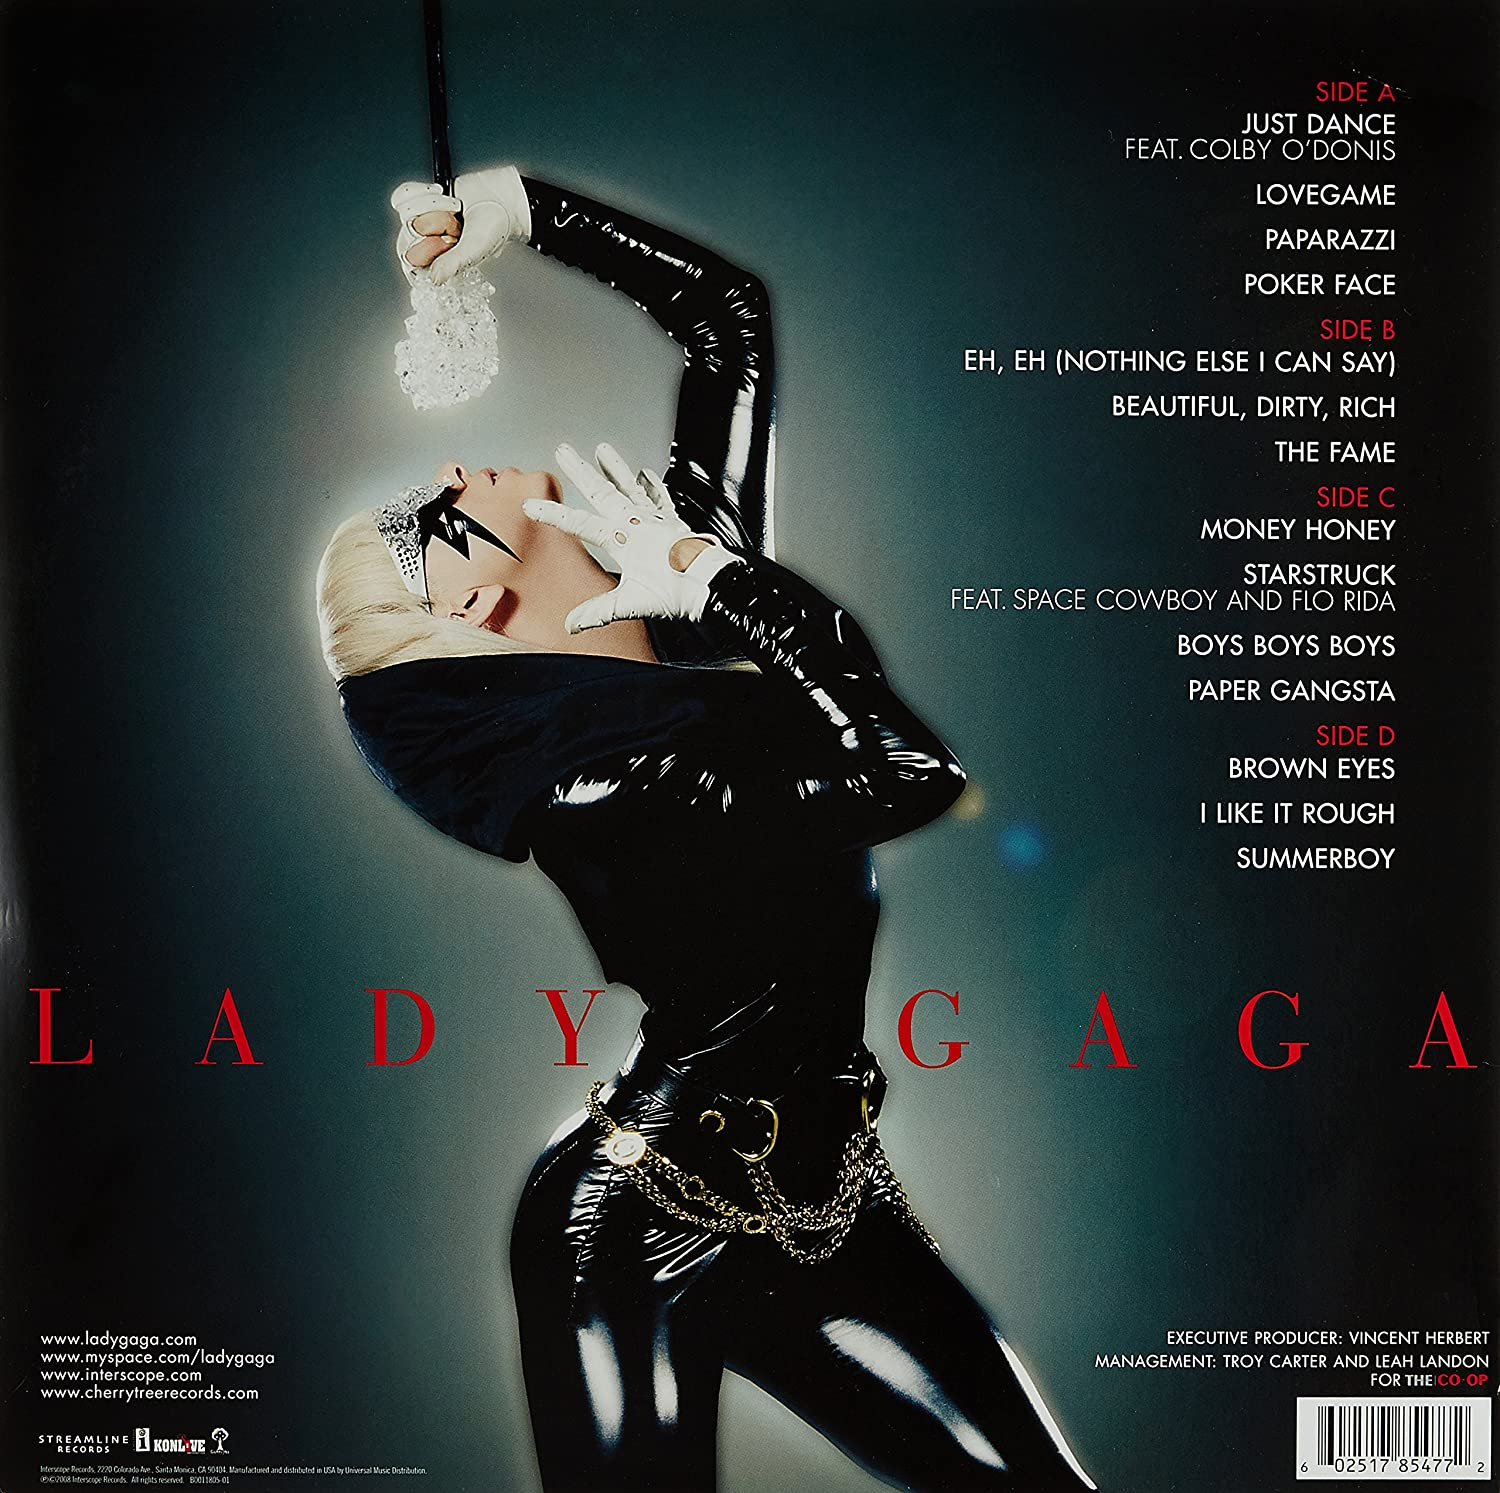 Lady gaga is a one-of-a-kind artist and performer. She holds the distinction of generating three consecutive number one albums on the billboard hot 100,